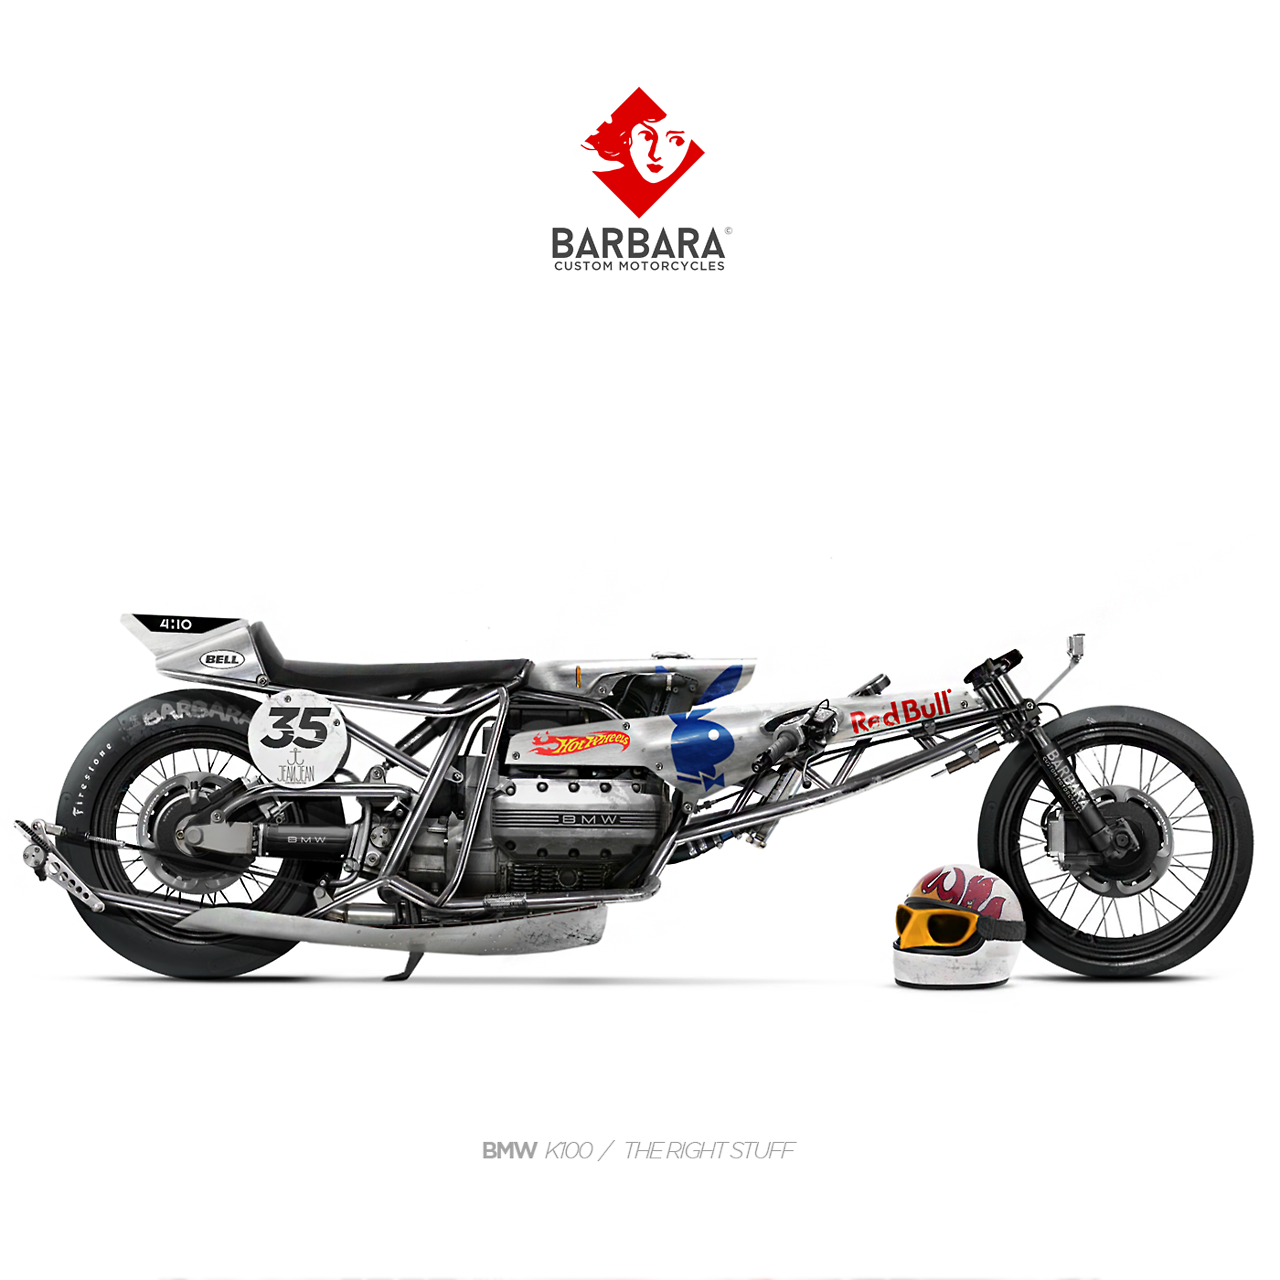 Barbara Motorcycles With Images